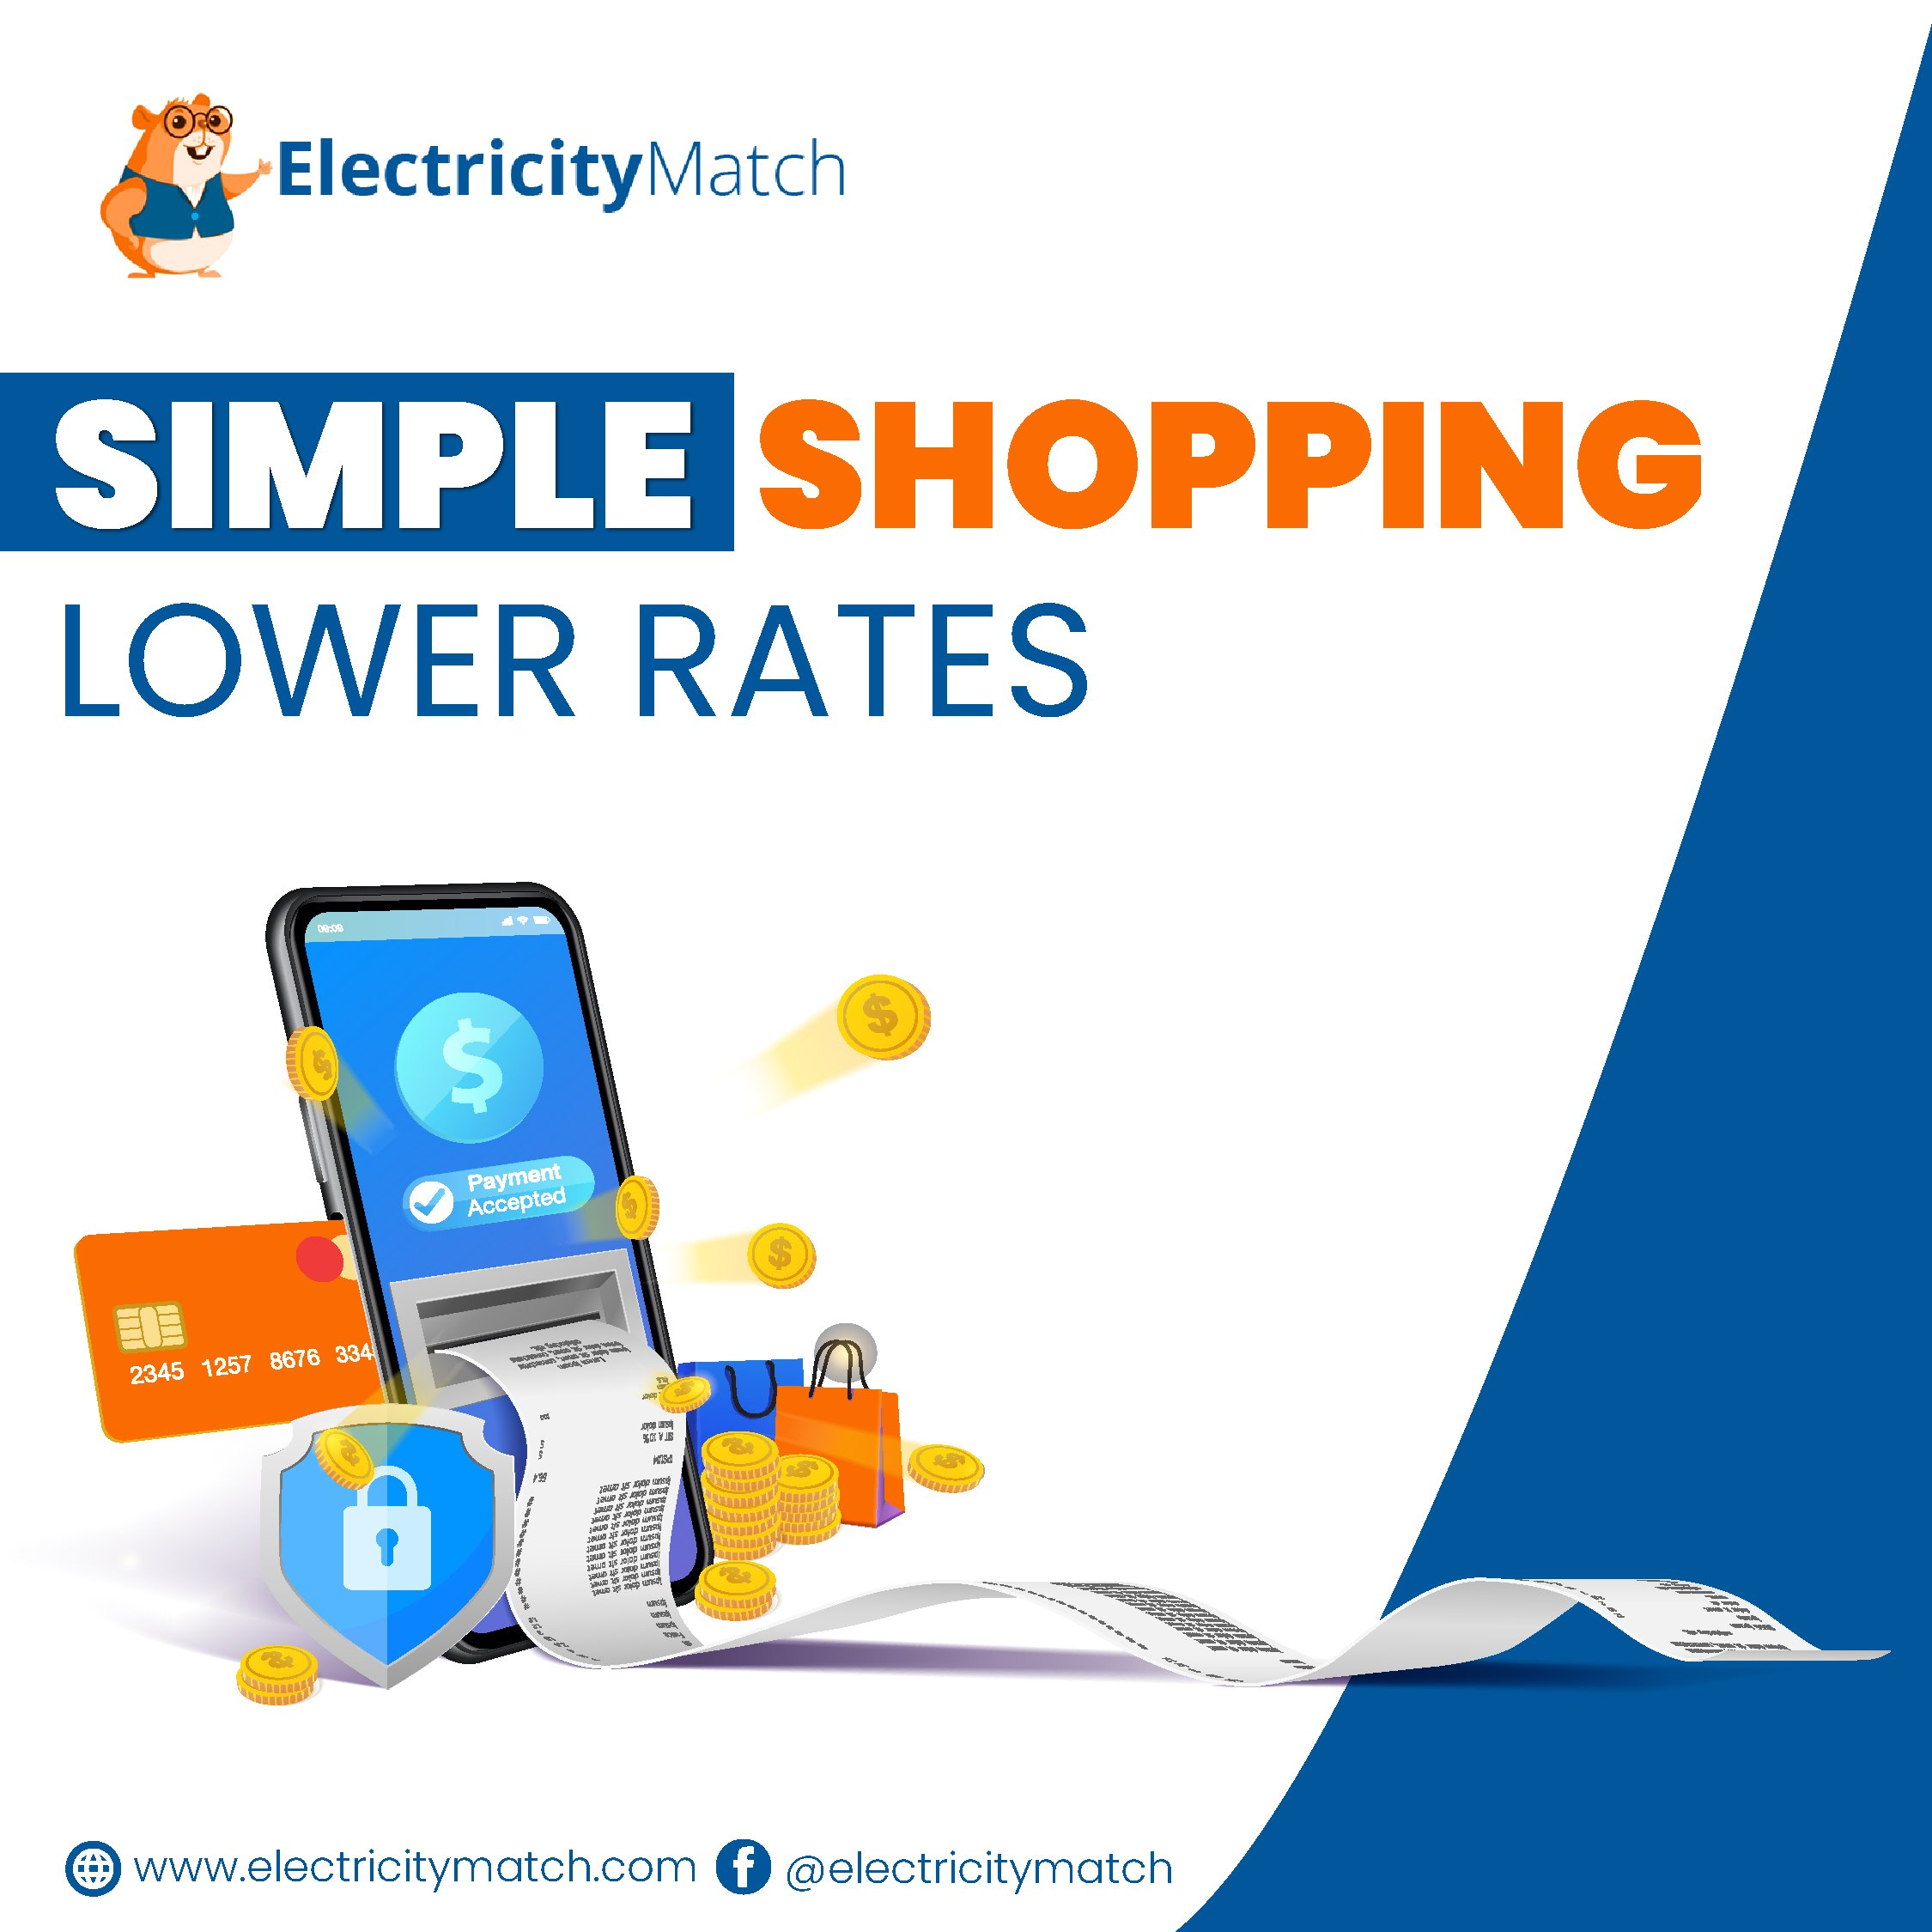 Simple Shopping Lower Rates – Square